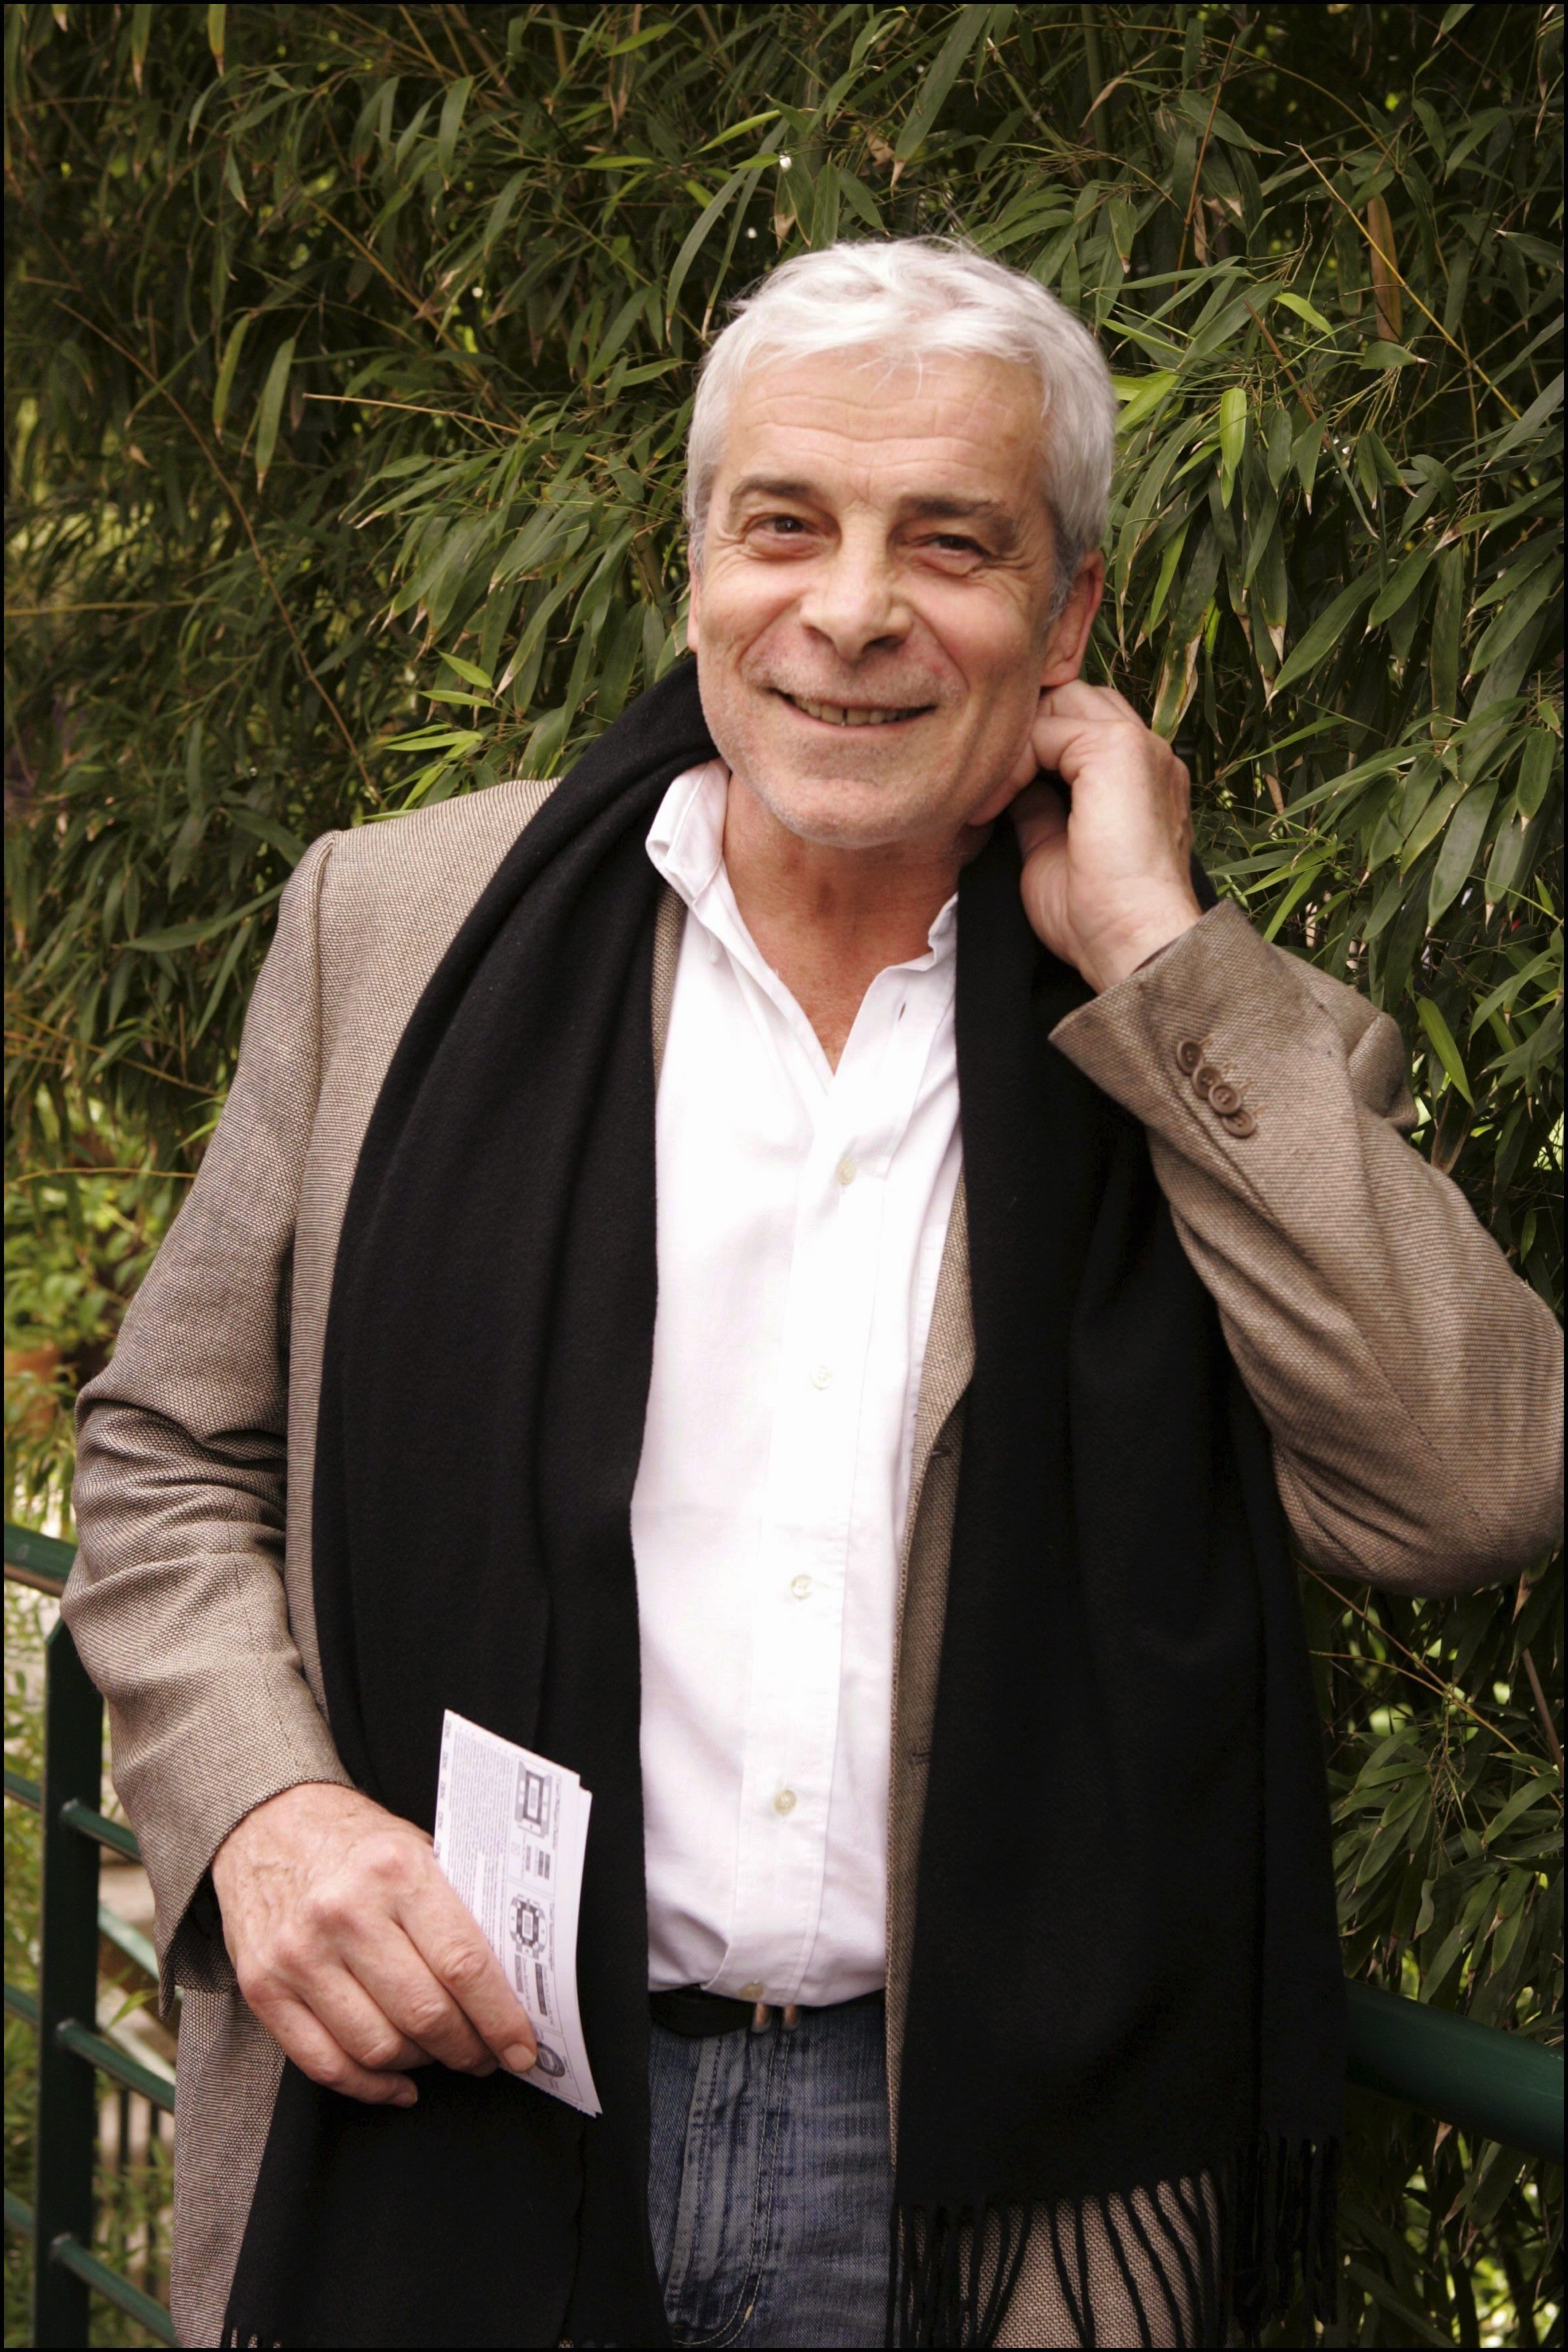 Jacques Weber Juin 2005 à Paris | Photo : Getty Images